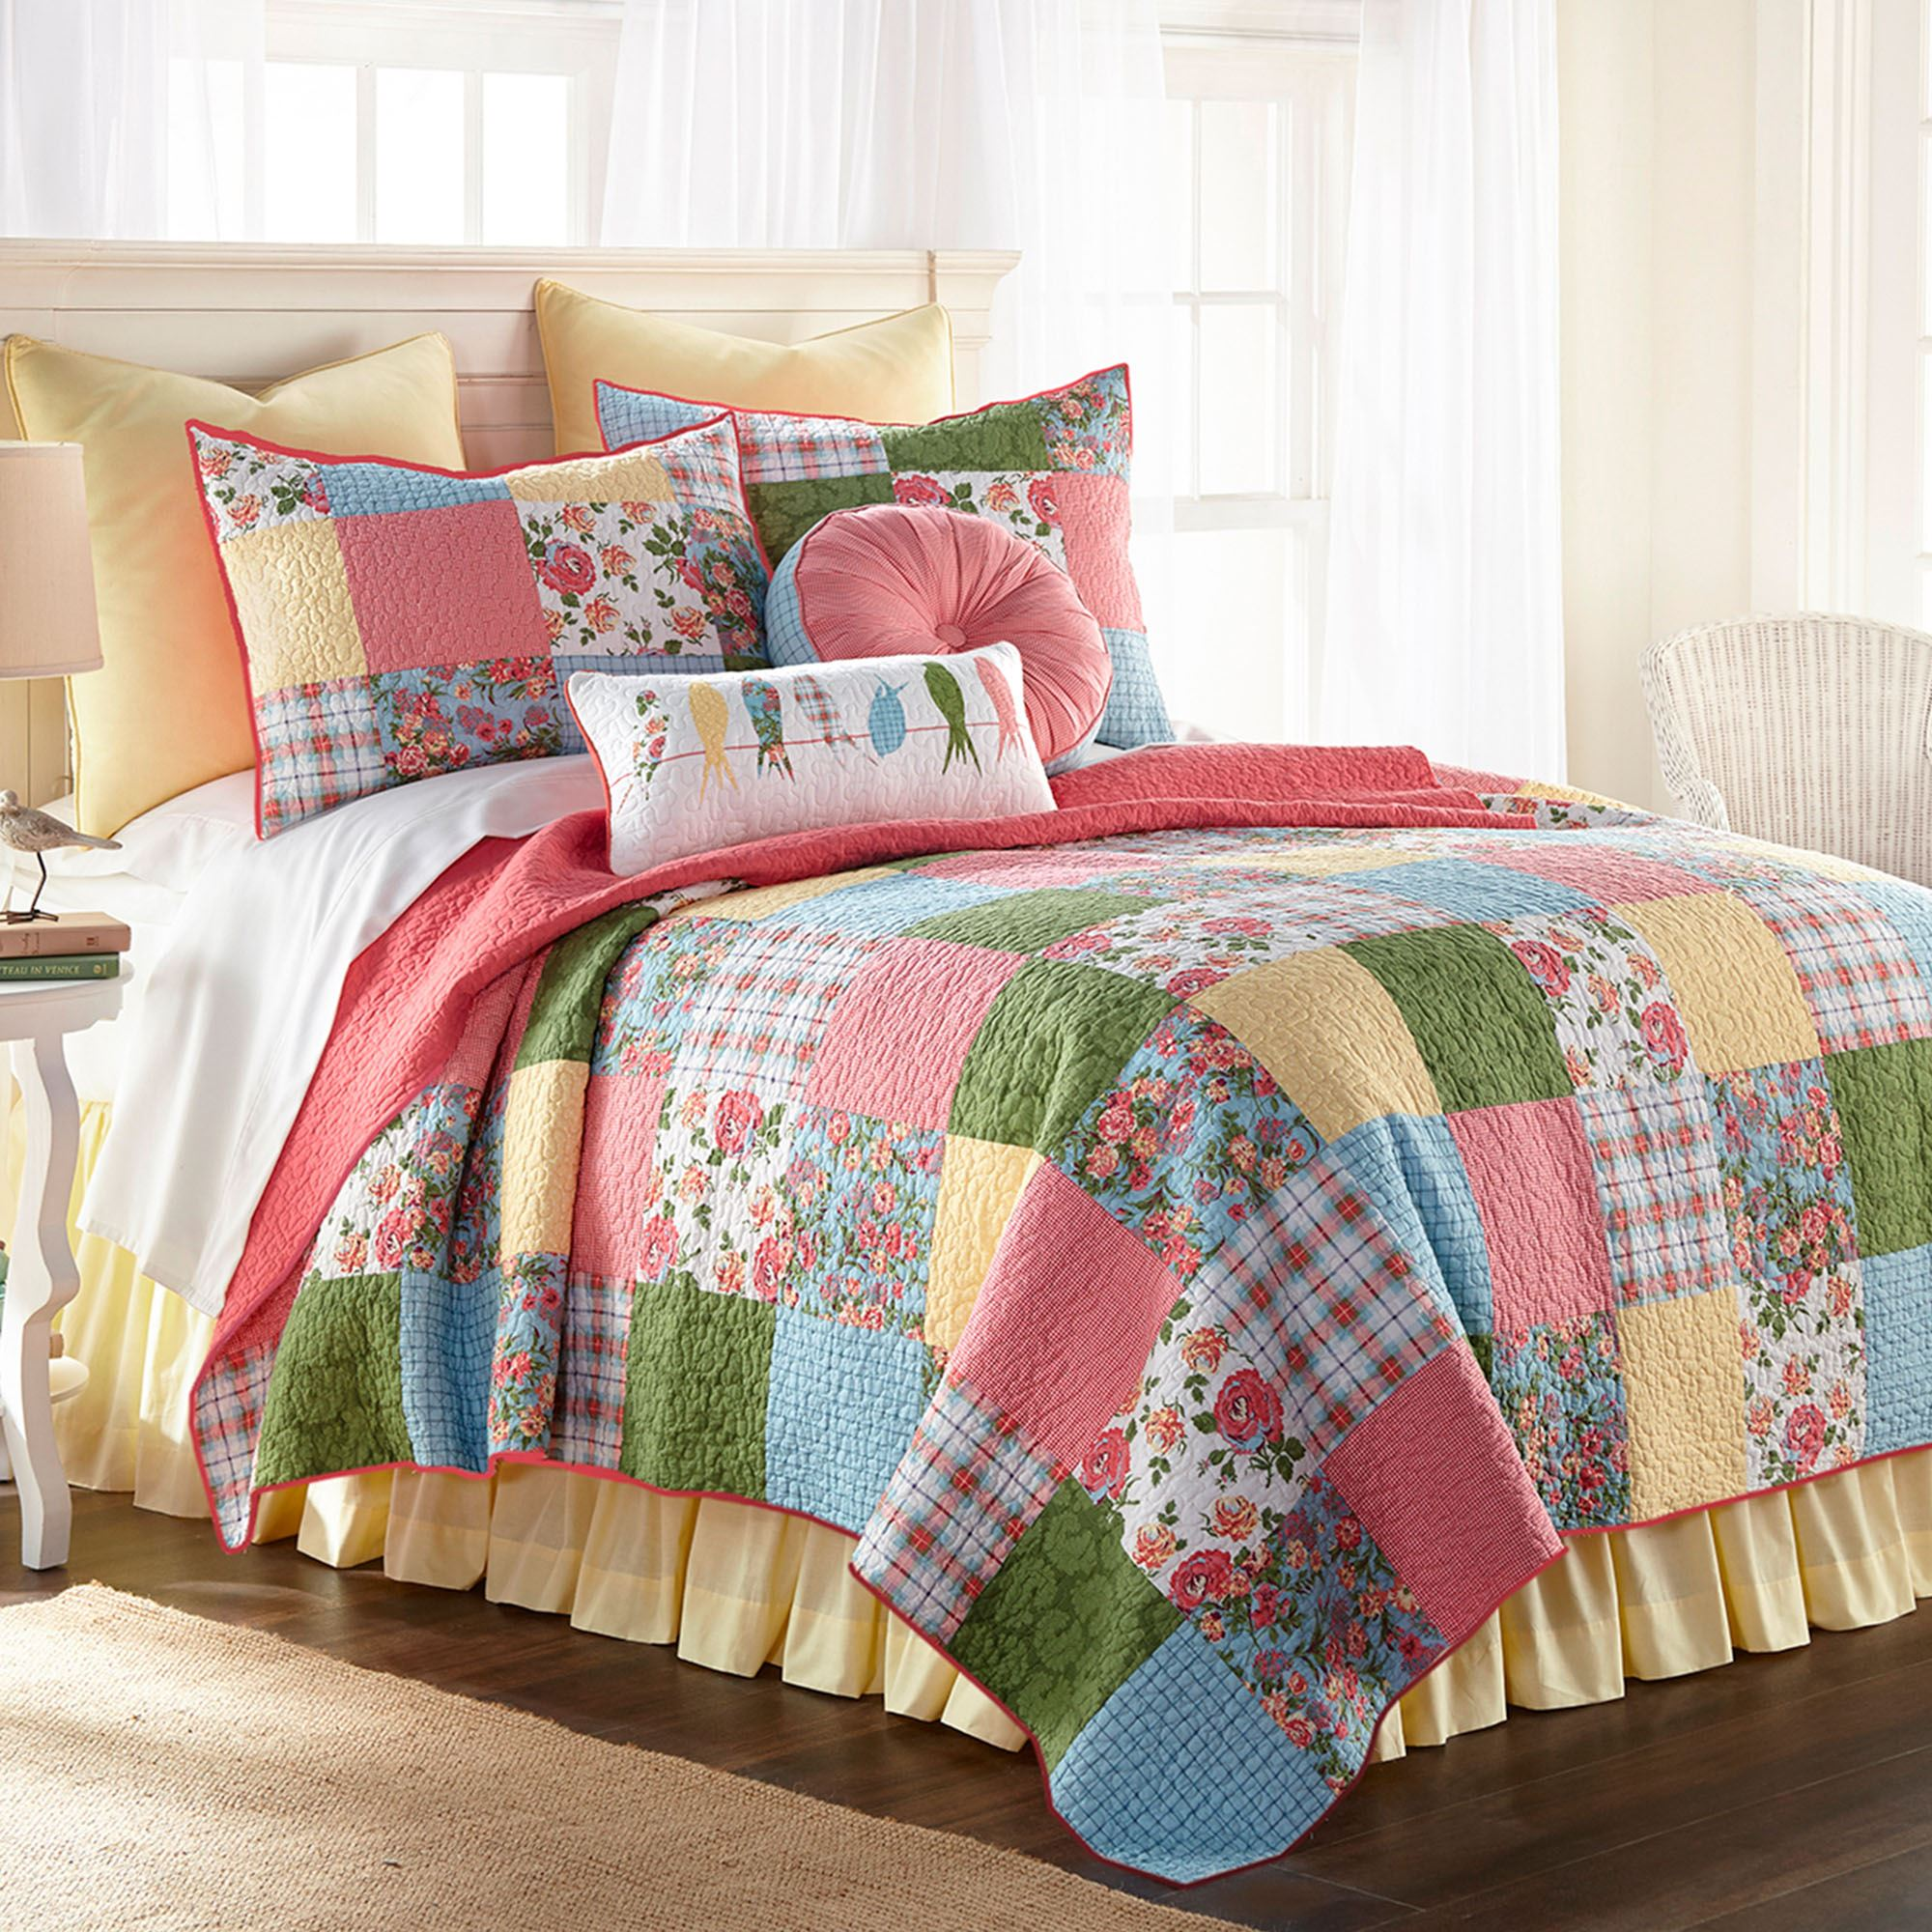 Sunny Patch Patchwork Quilt By Donna Sharp